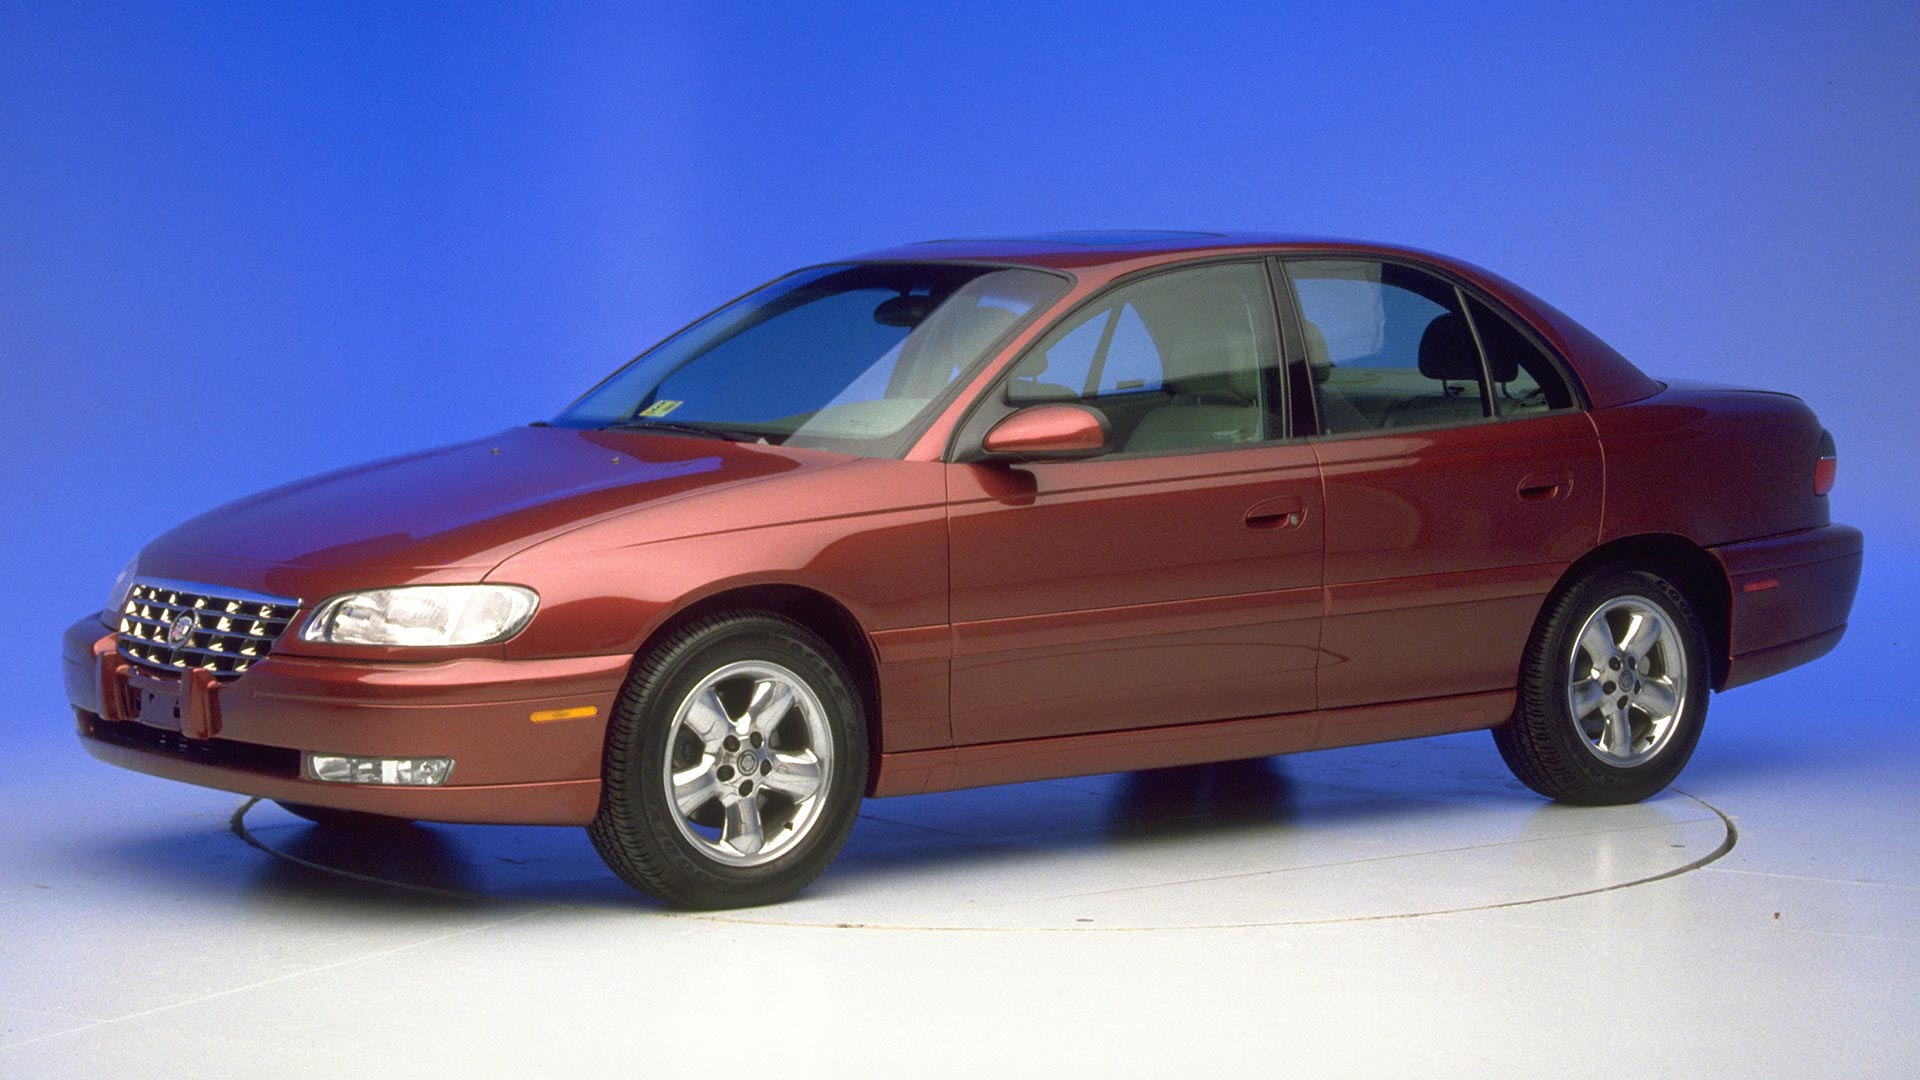 1999 Cadillac Catera 4-door sedan